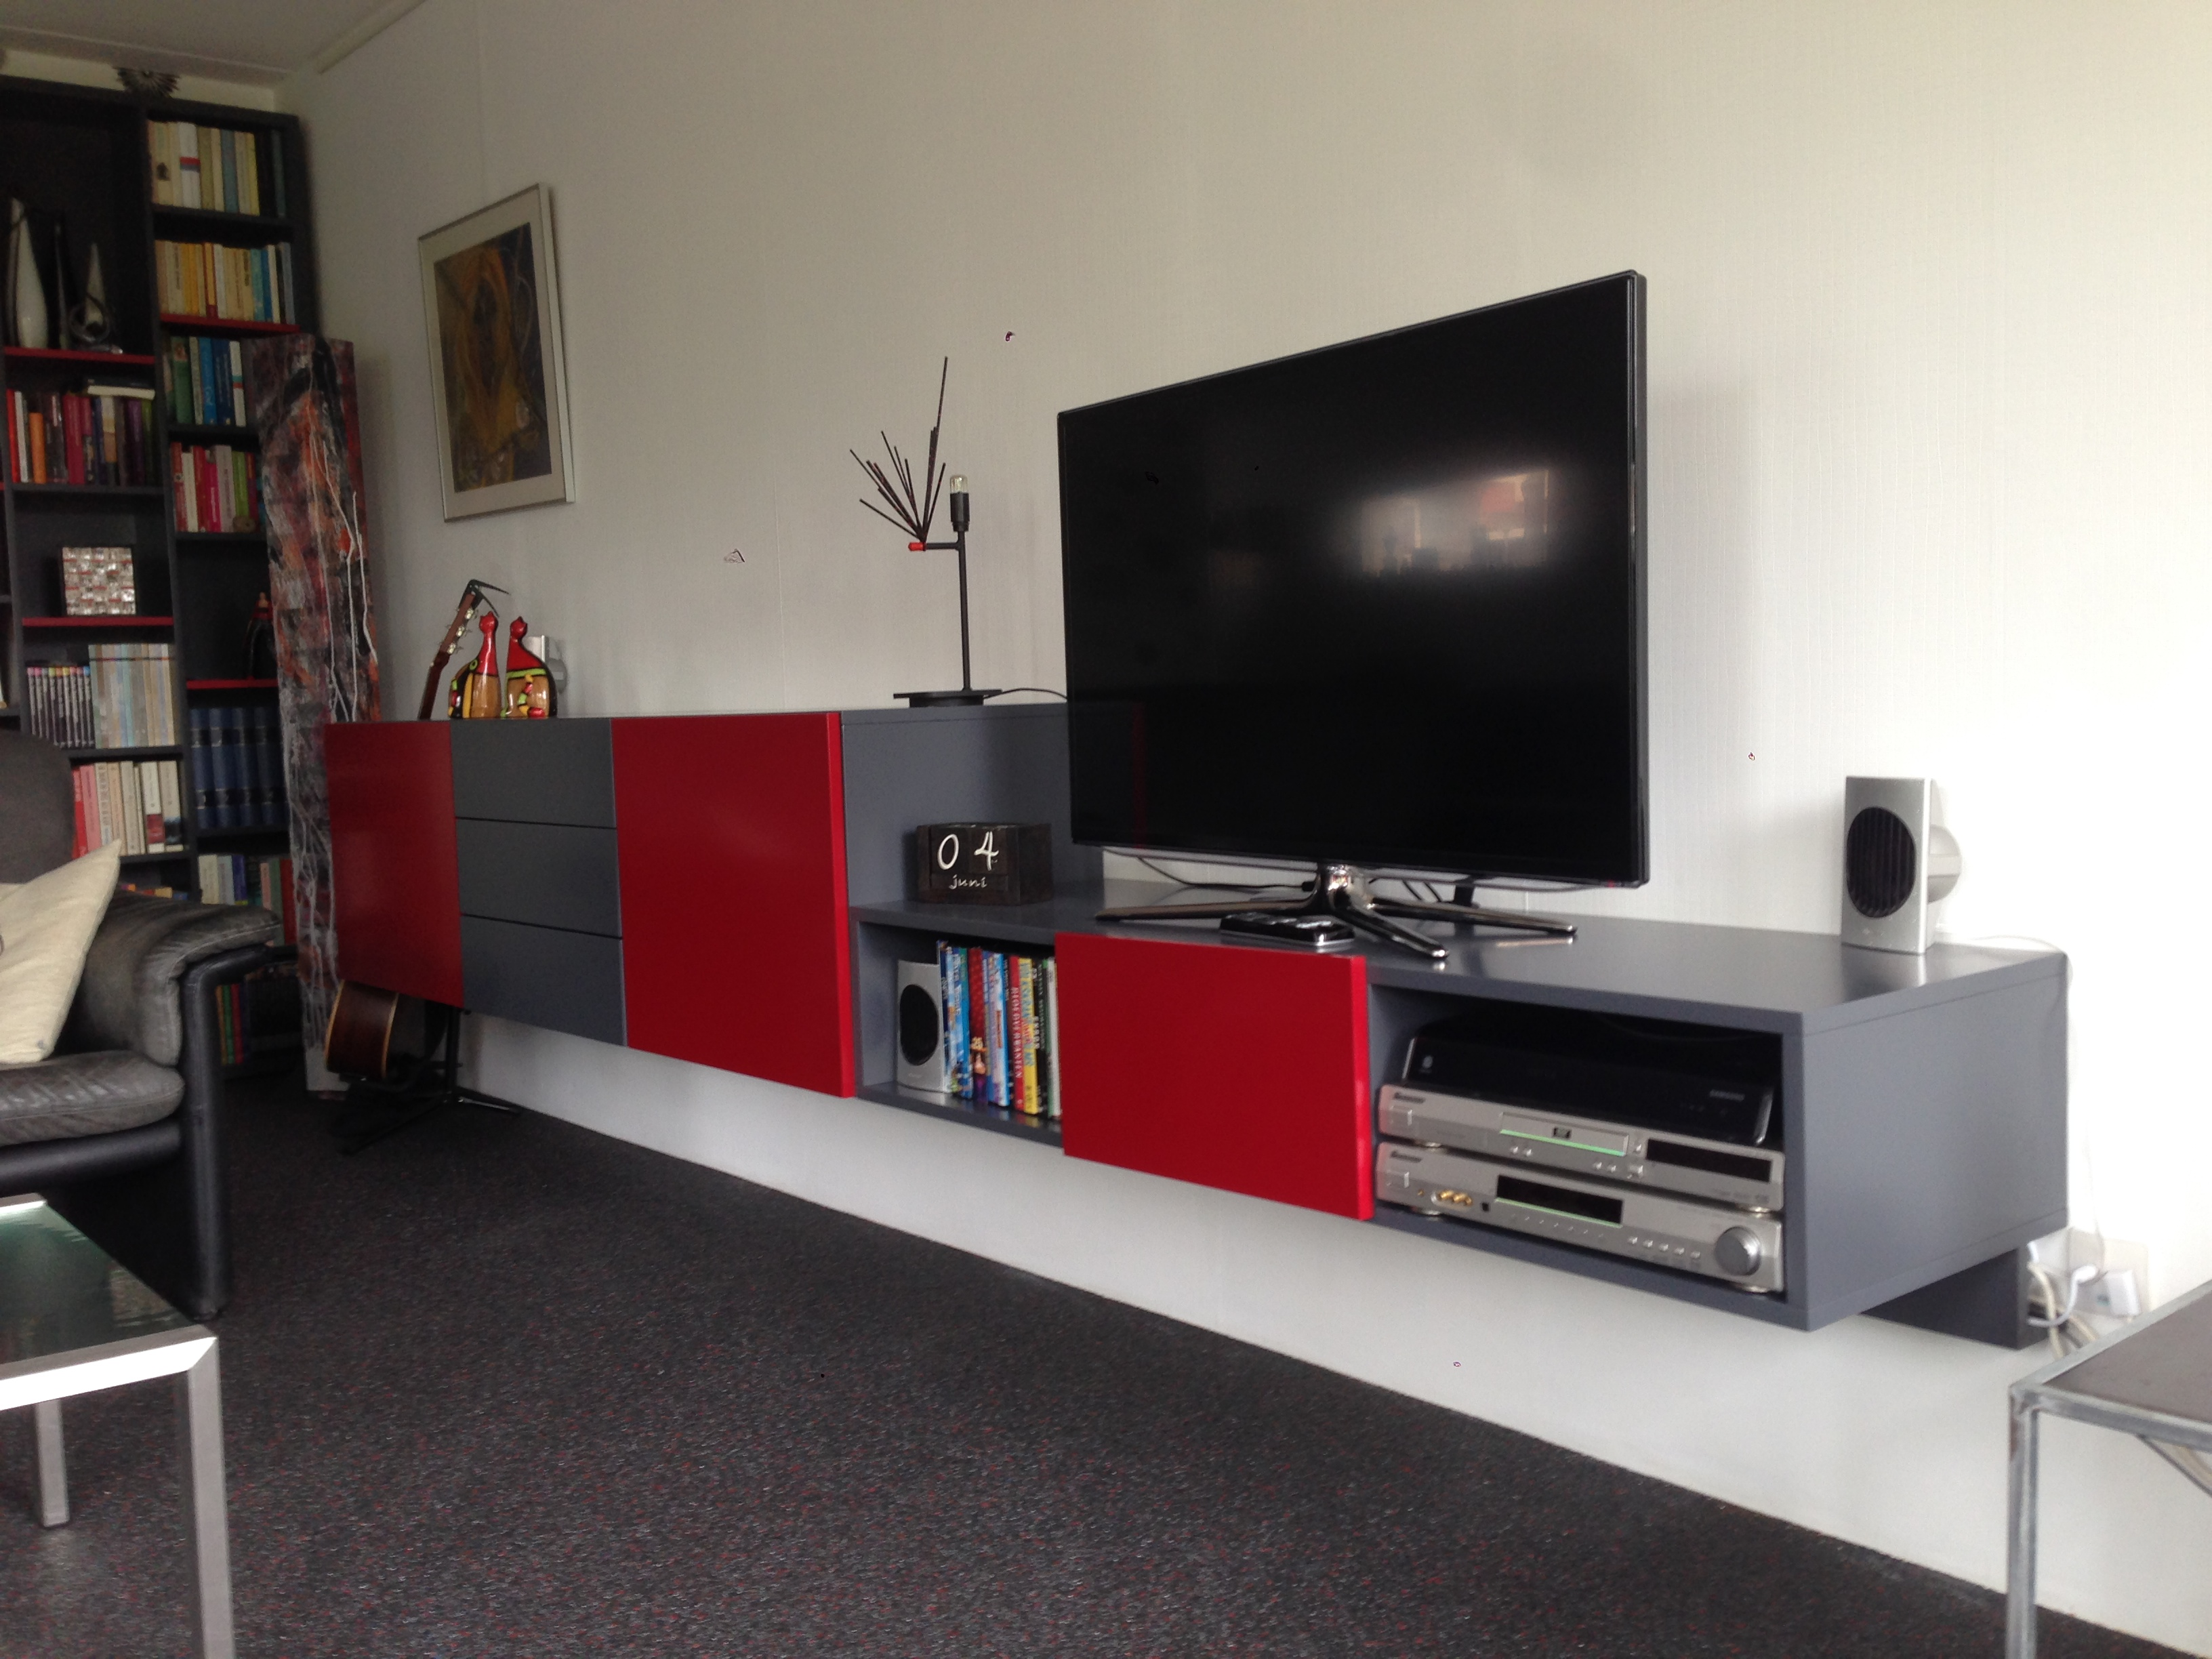 zwevend audio wandkast in grey-red